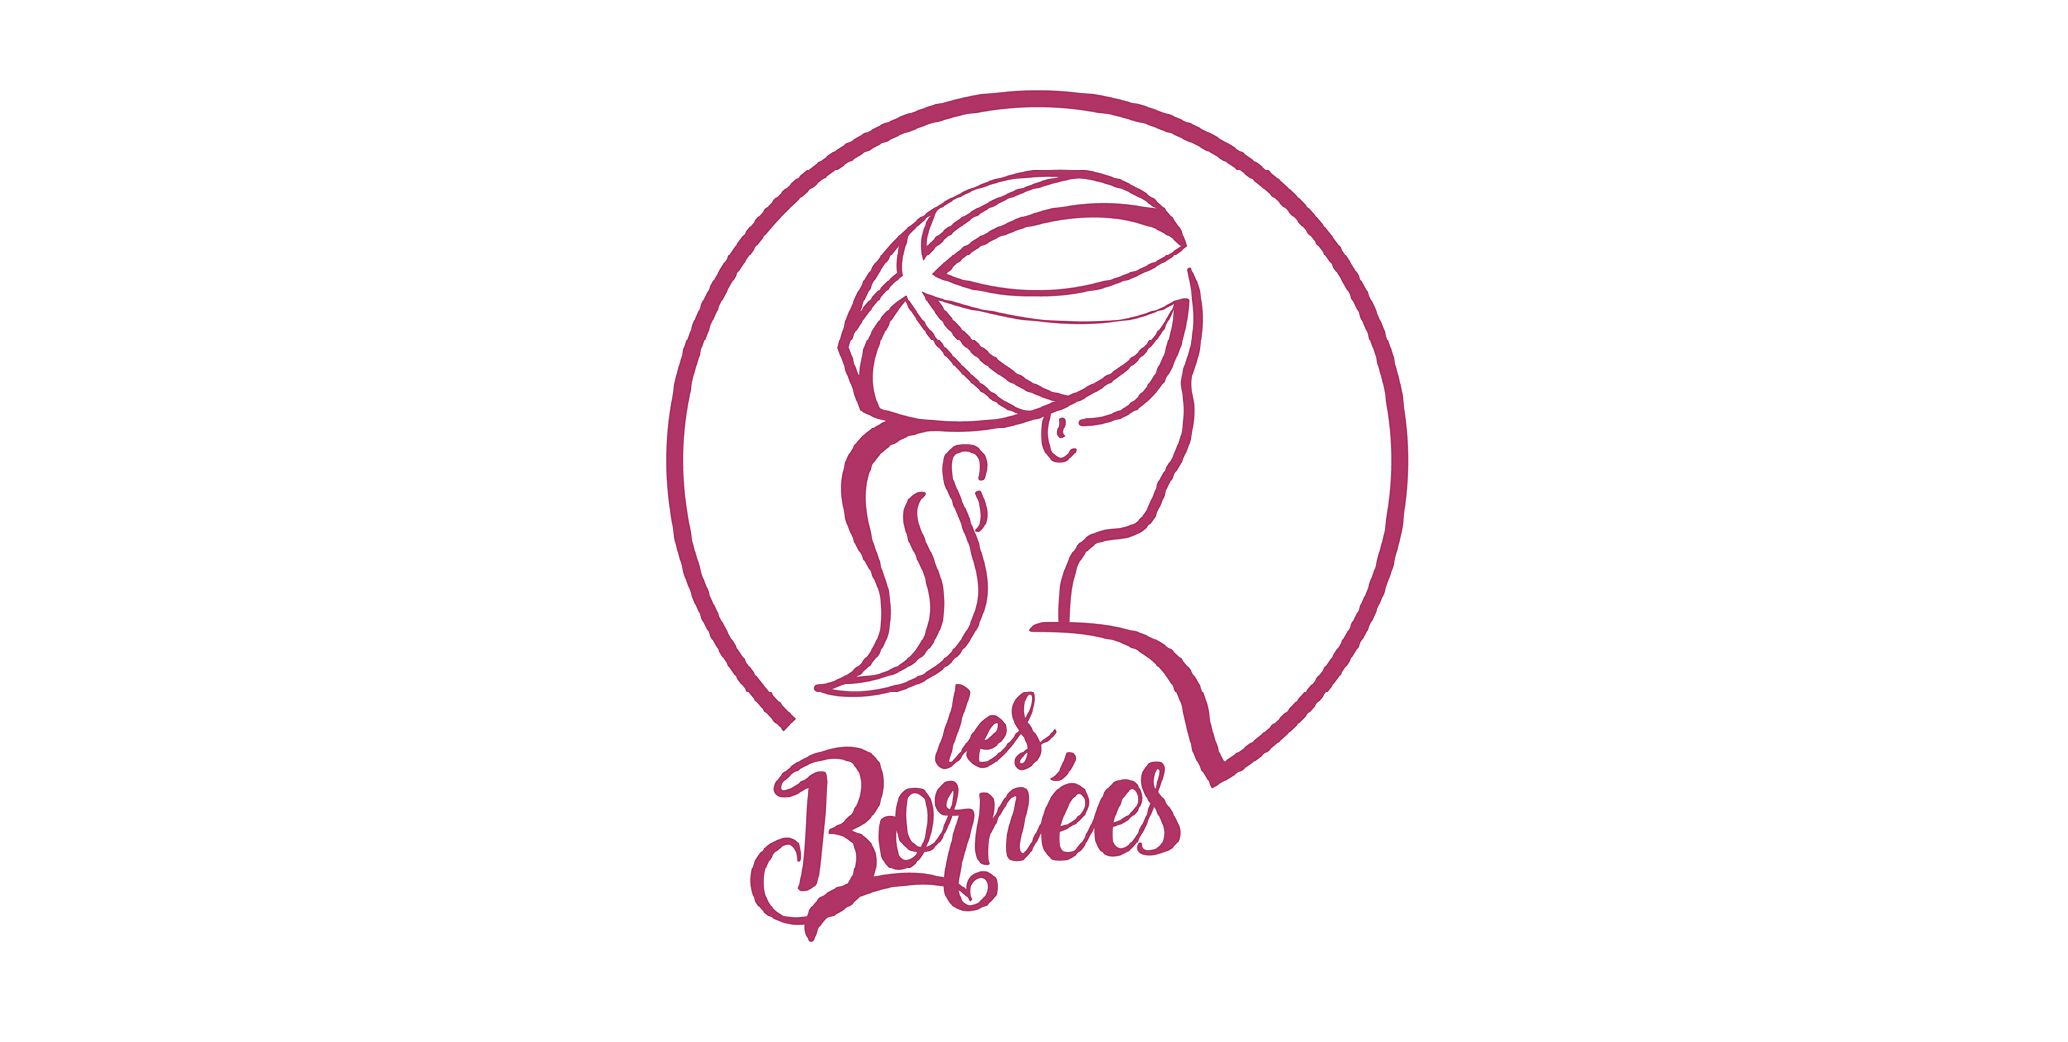 Start up logo les bornees